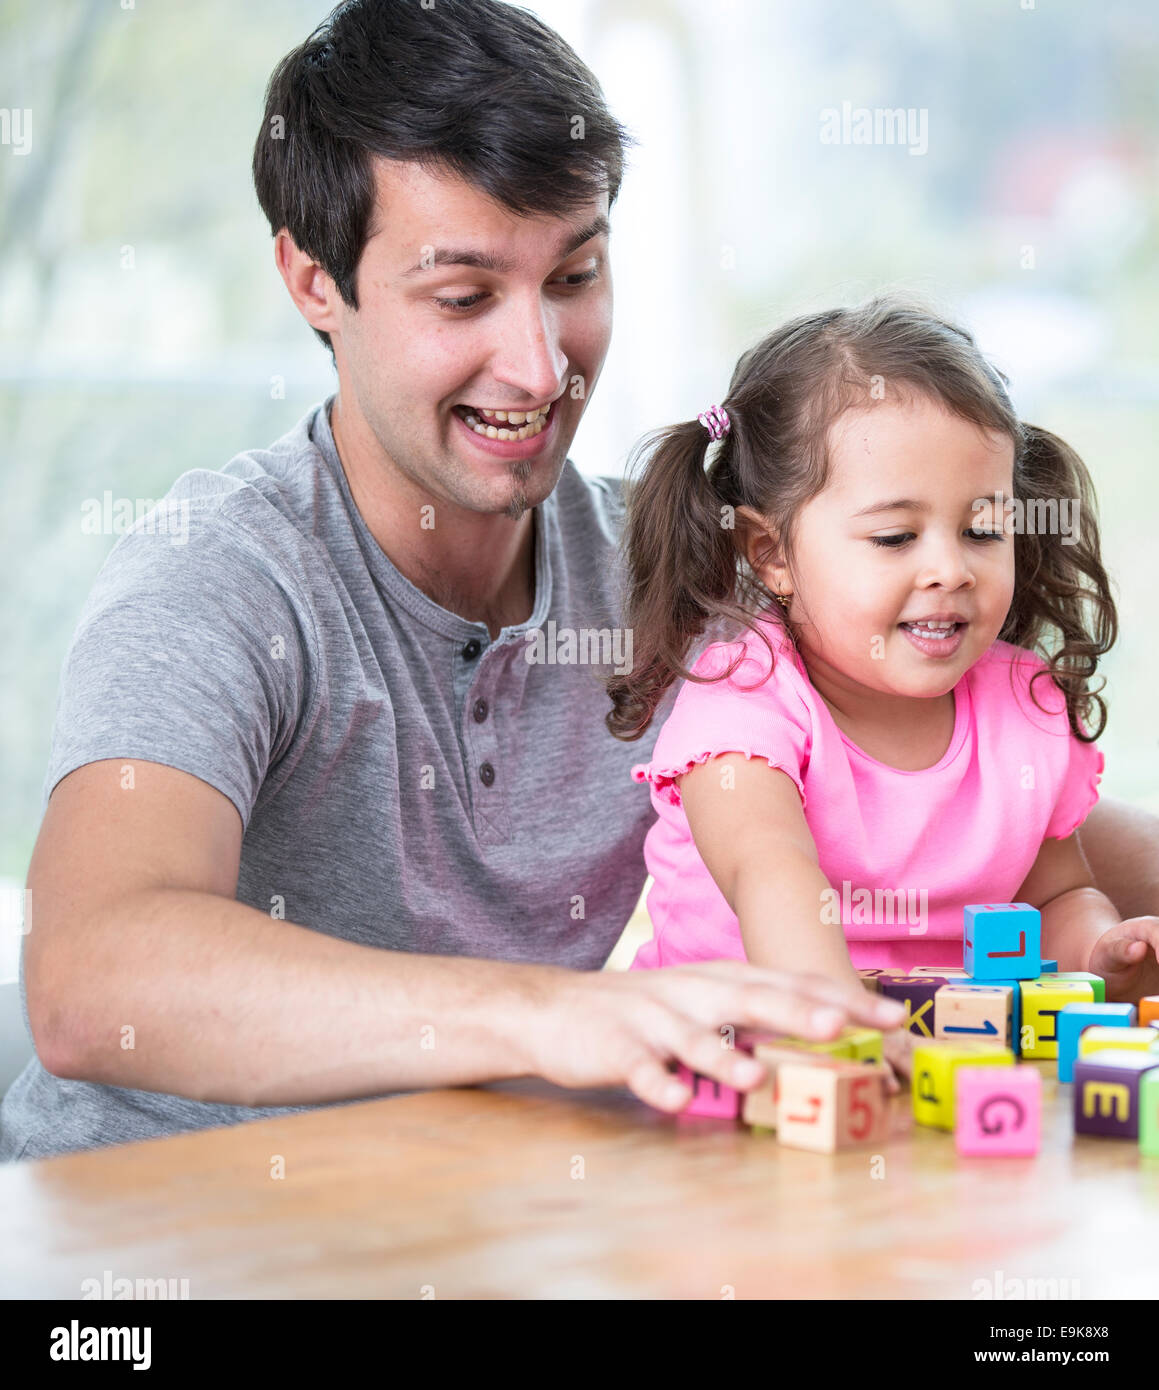 Happy father and daughter playing with building blocks at table in house - Stock Image